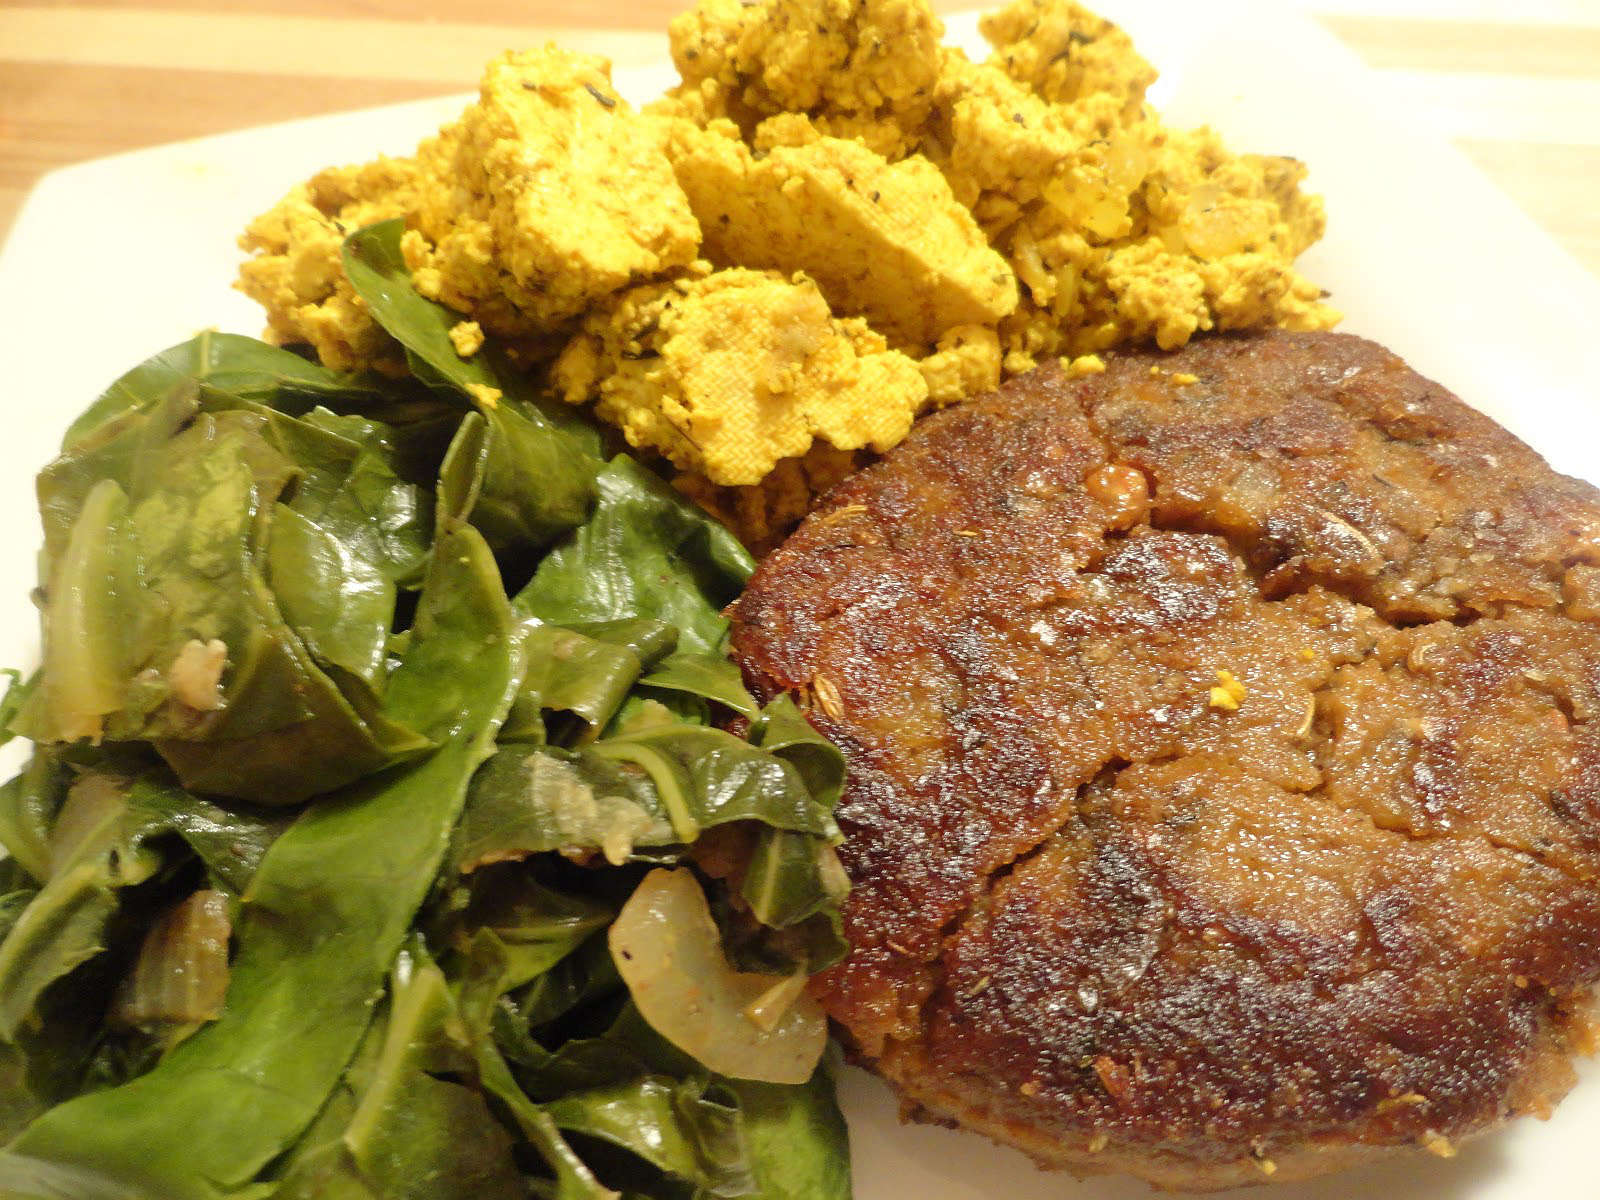 vegan breakfast sausage with tofu scramble and greens